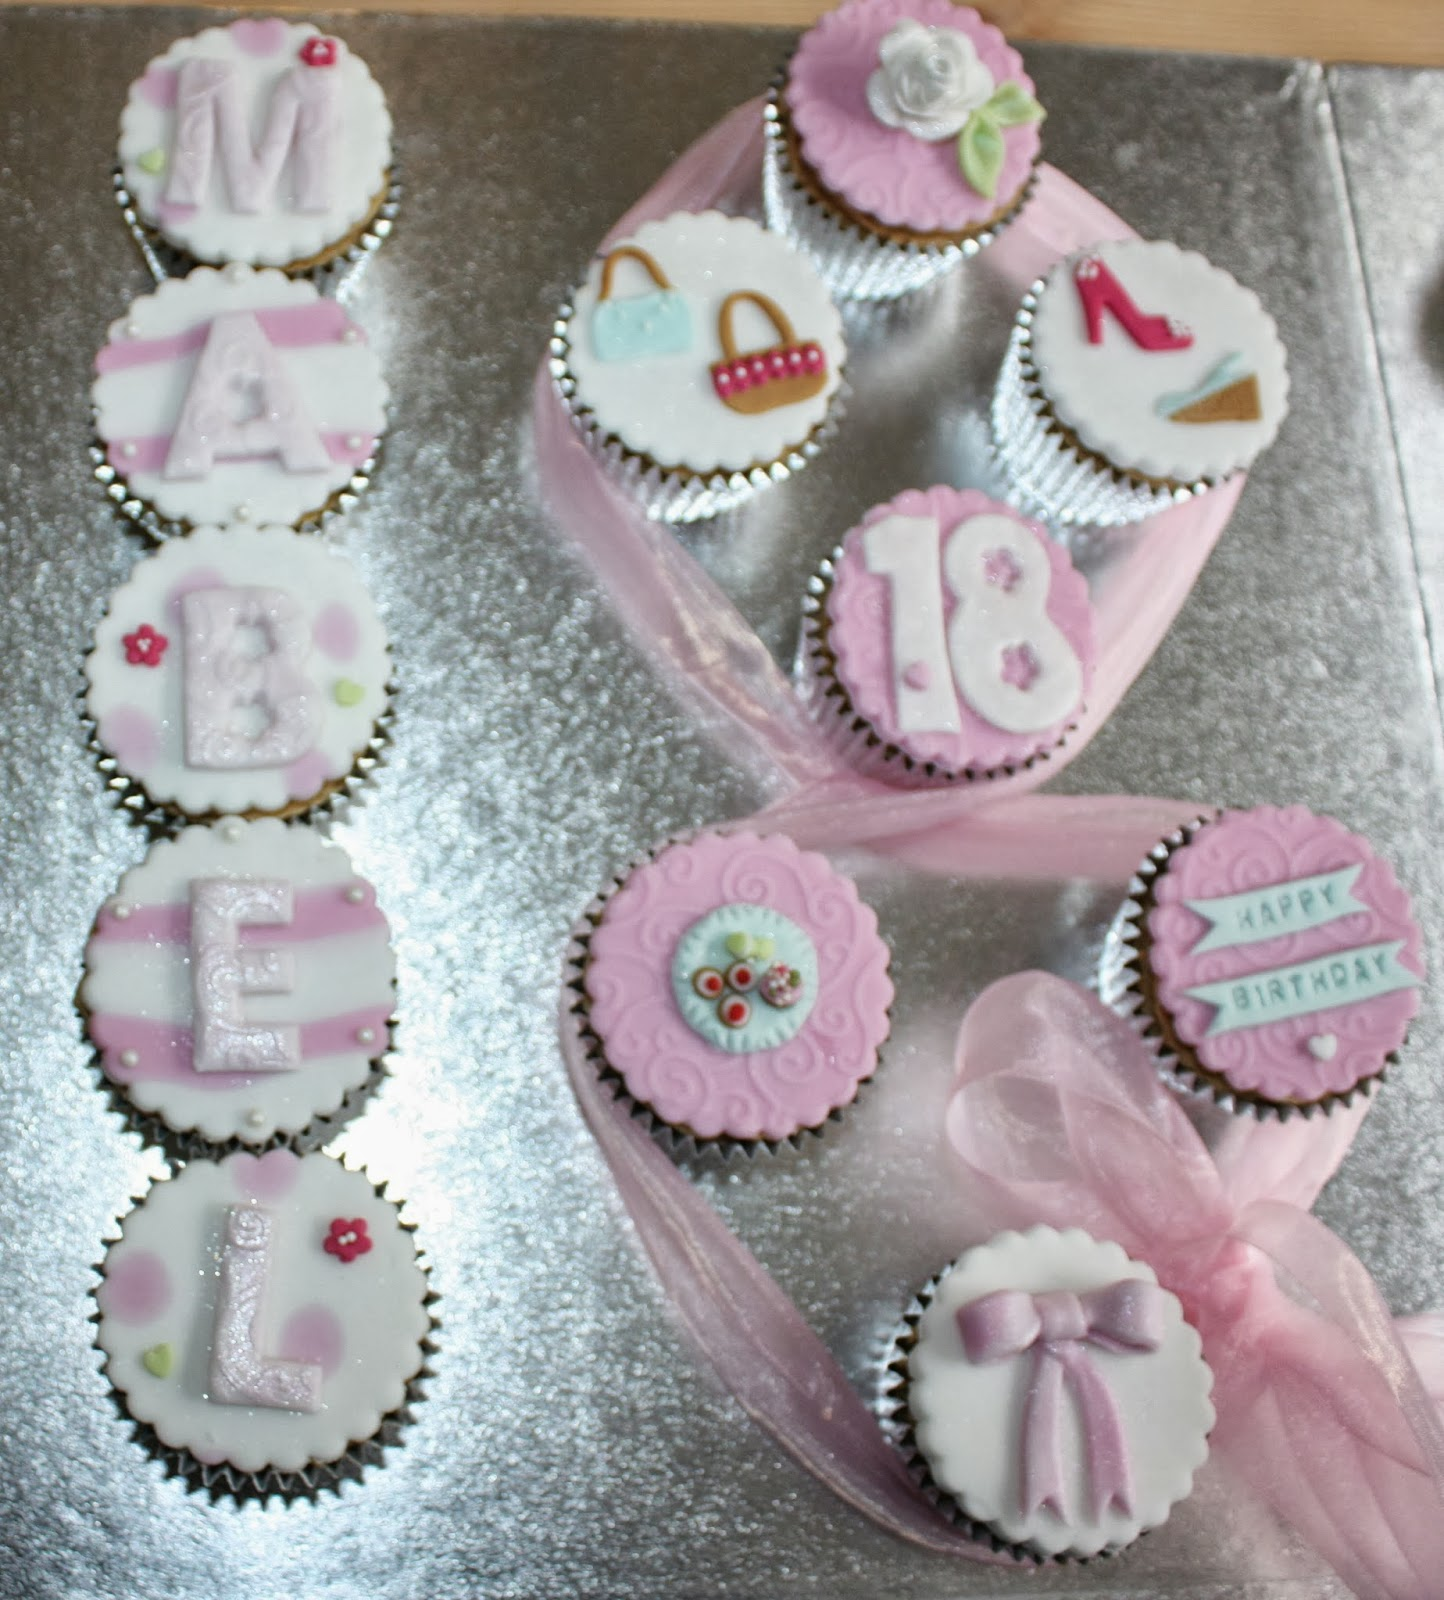 Angie S Cakes 18th Birthday Cupcakes For Twin Girls With